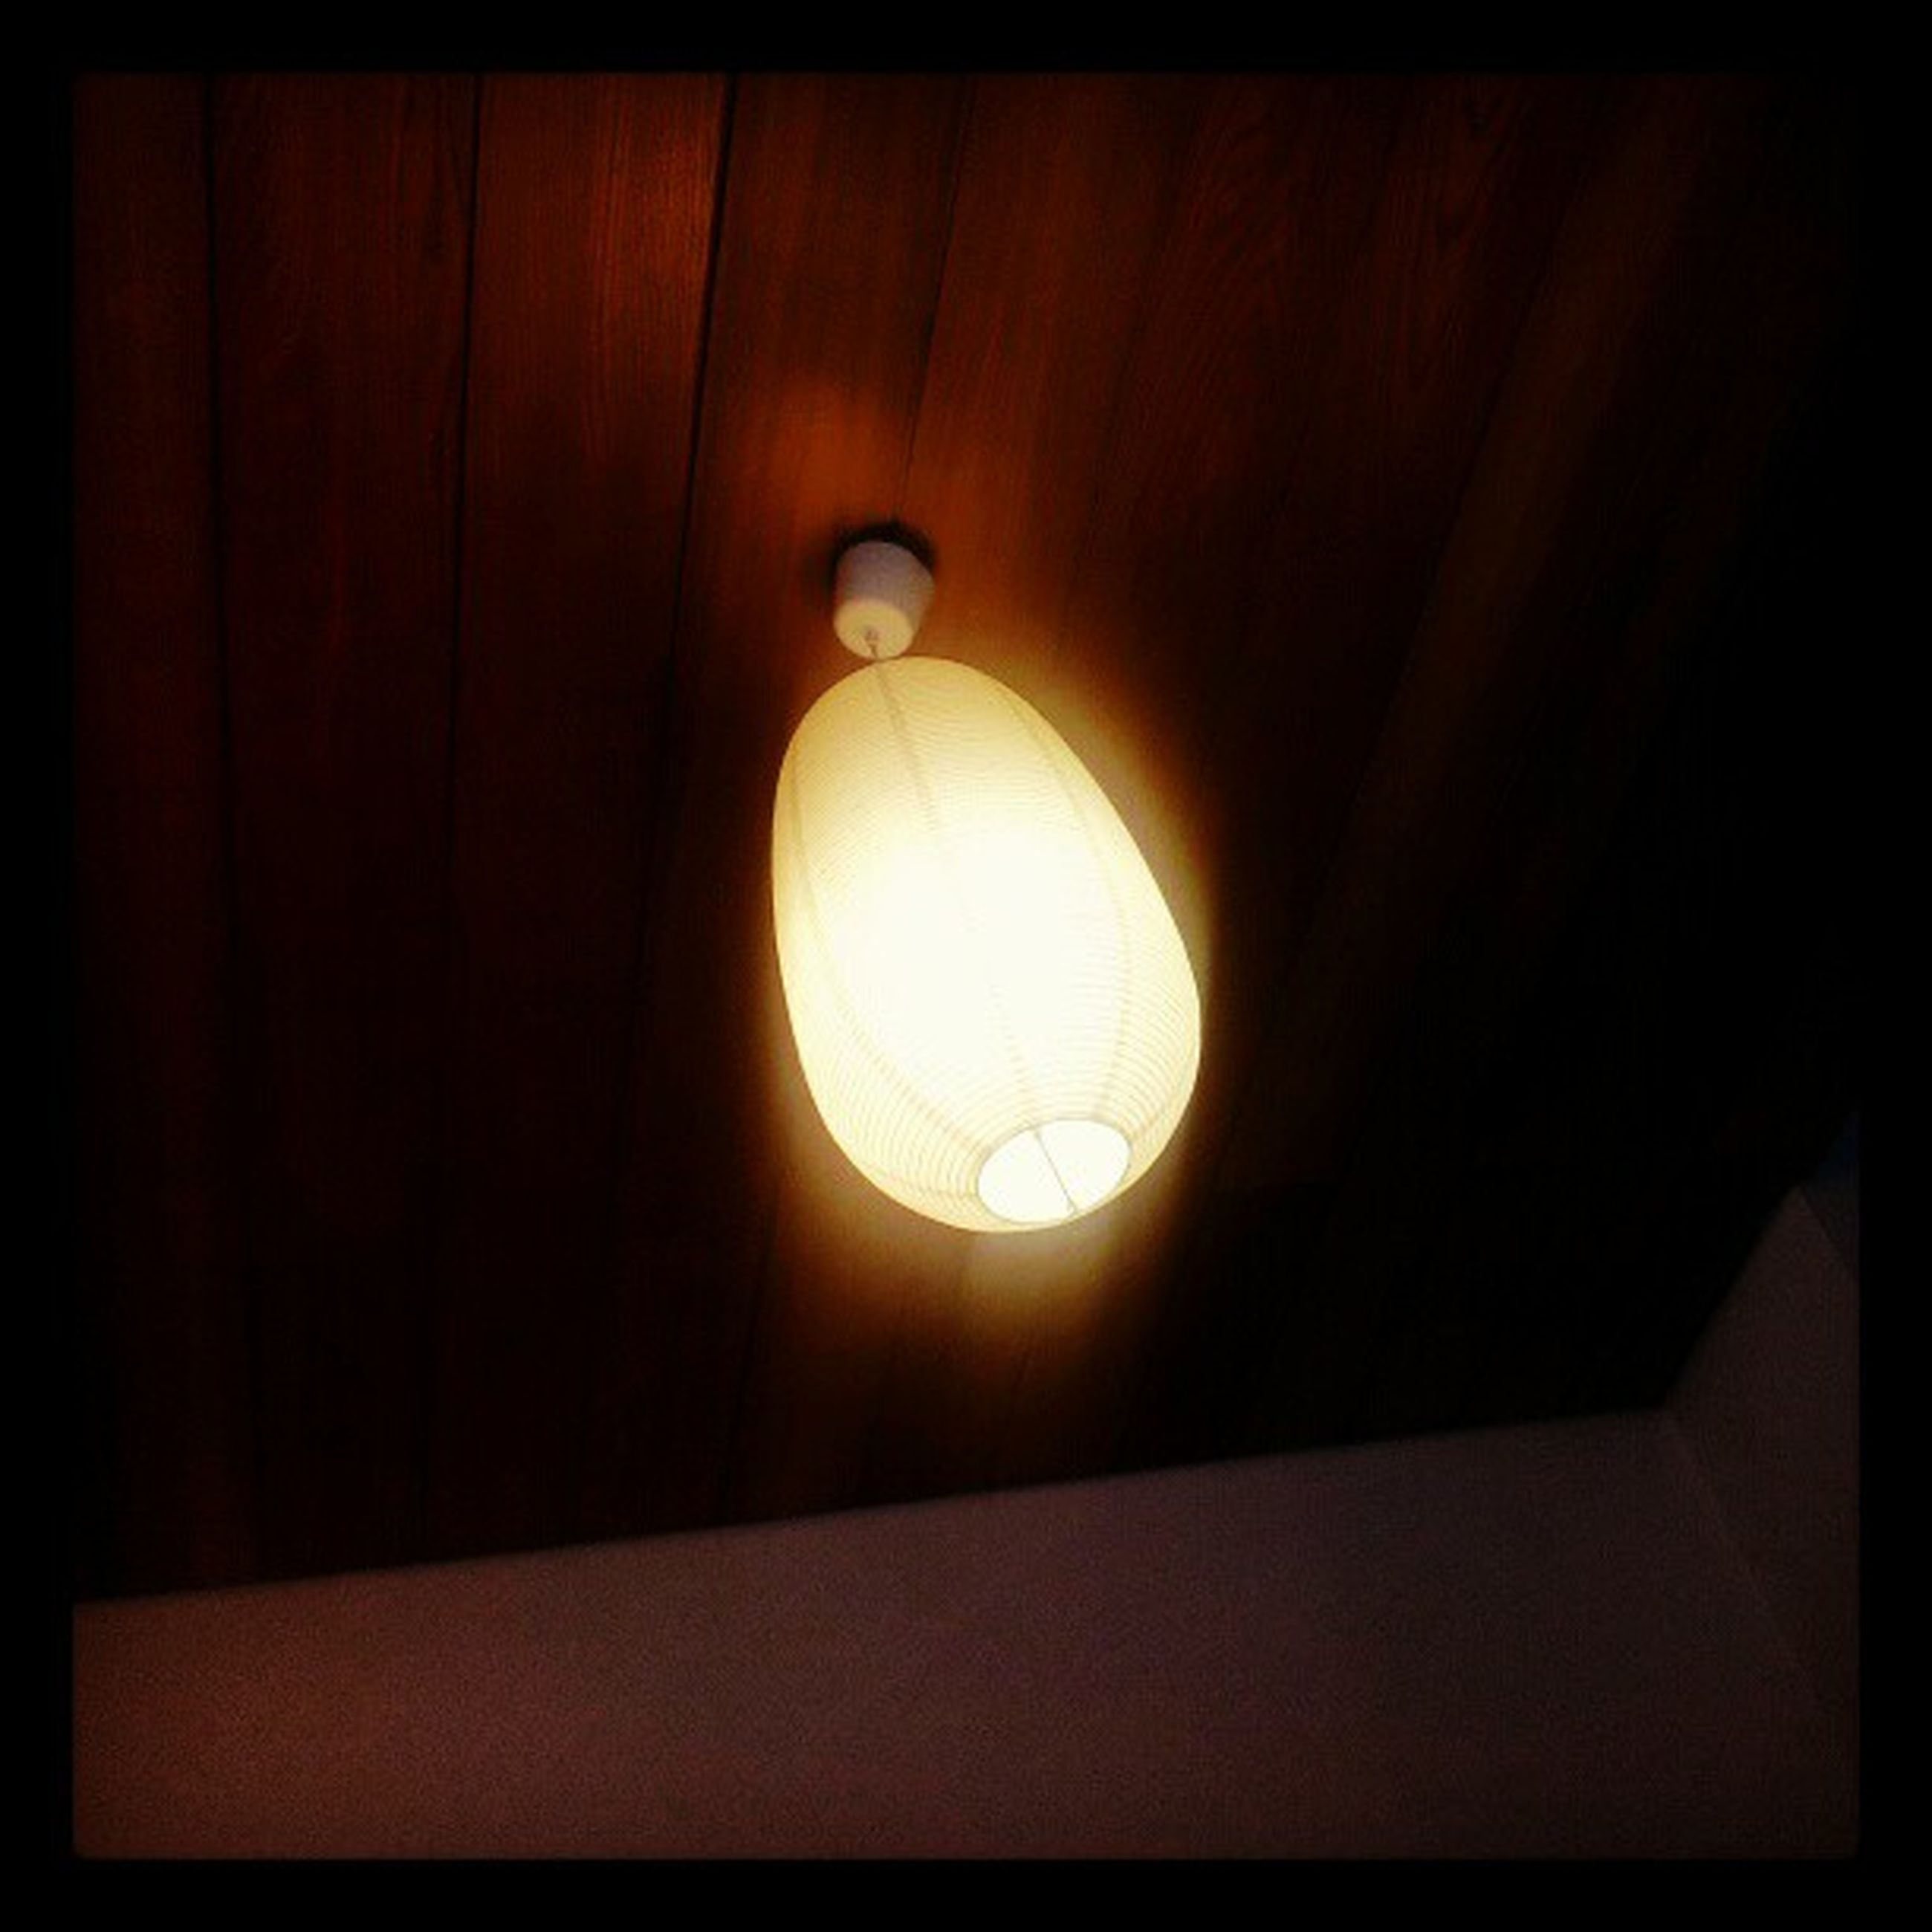 indoors, lighting equipment, illuminated, electricity, ceiling, low angle view, electric lamp, hanging, electric light, light bulb, home interior, glowing, light - natural phenomenon, built structure, lamp, dark, no people, close-up, pattern, geometric shape